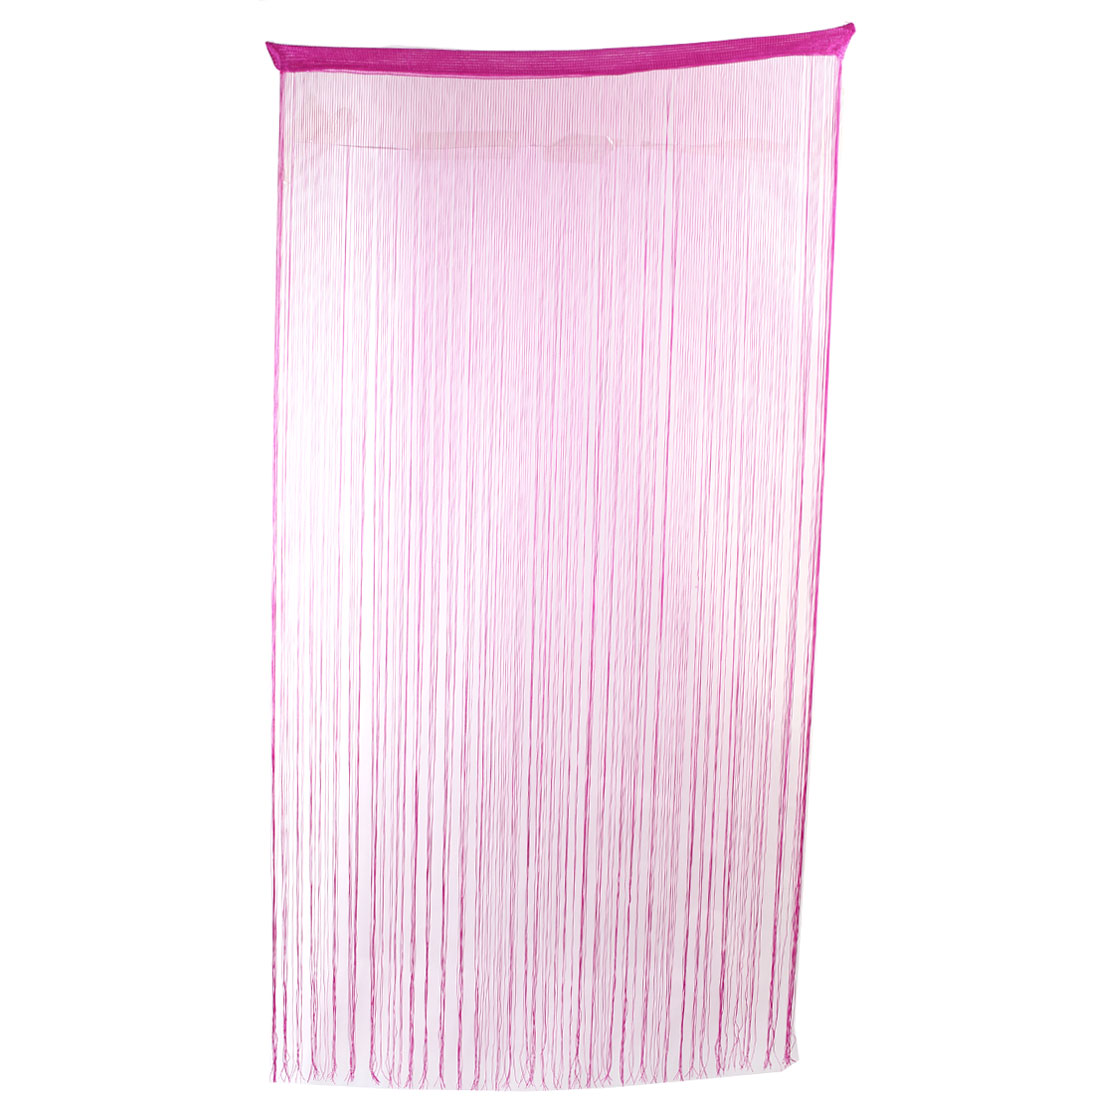 Household Window Straight Line Tassel Panel Divider Decoration String Curtain Fuchsia